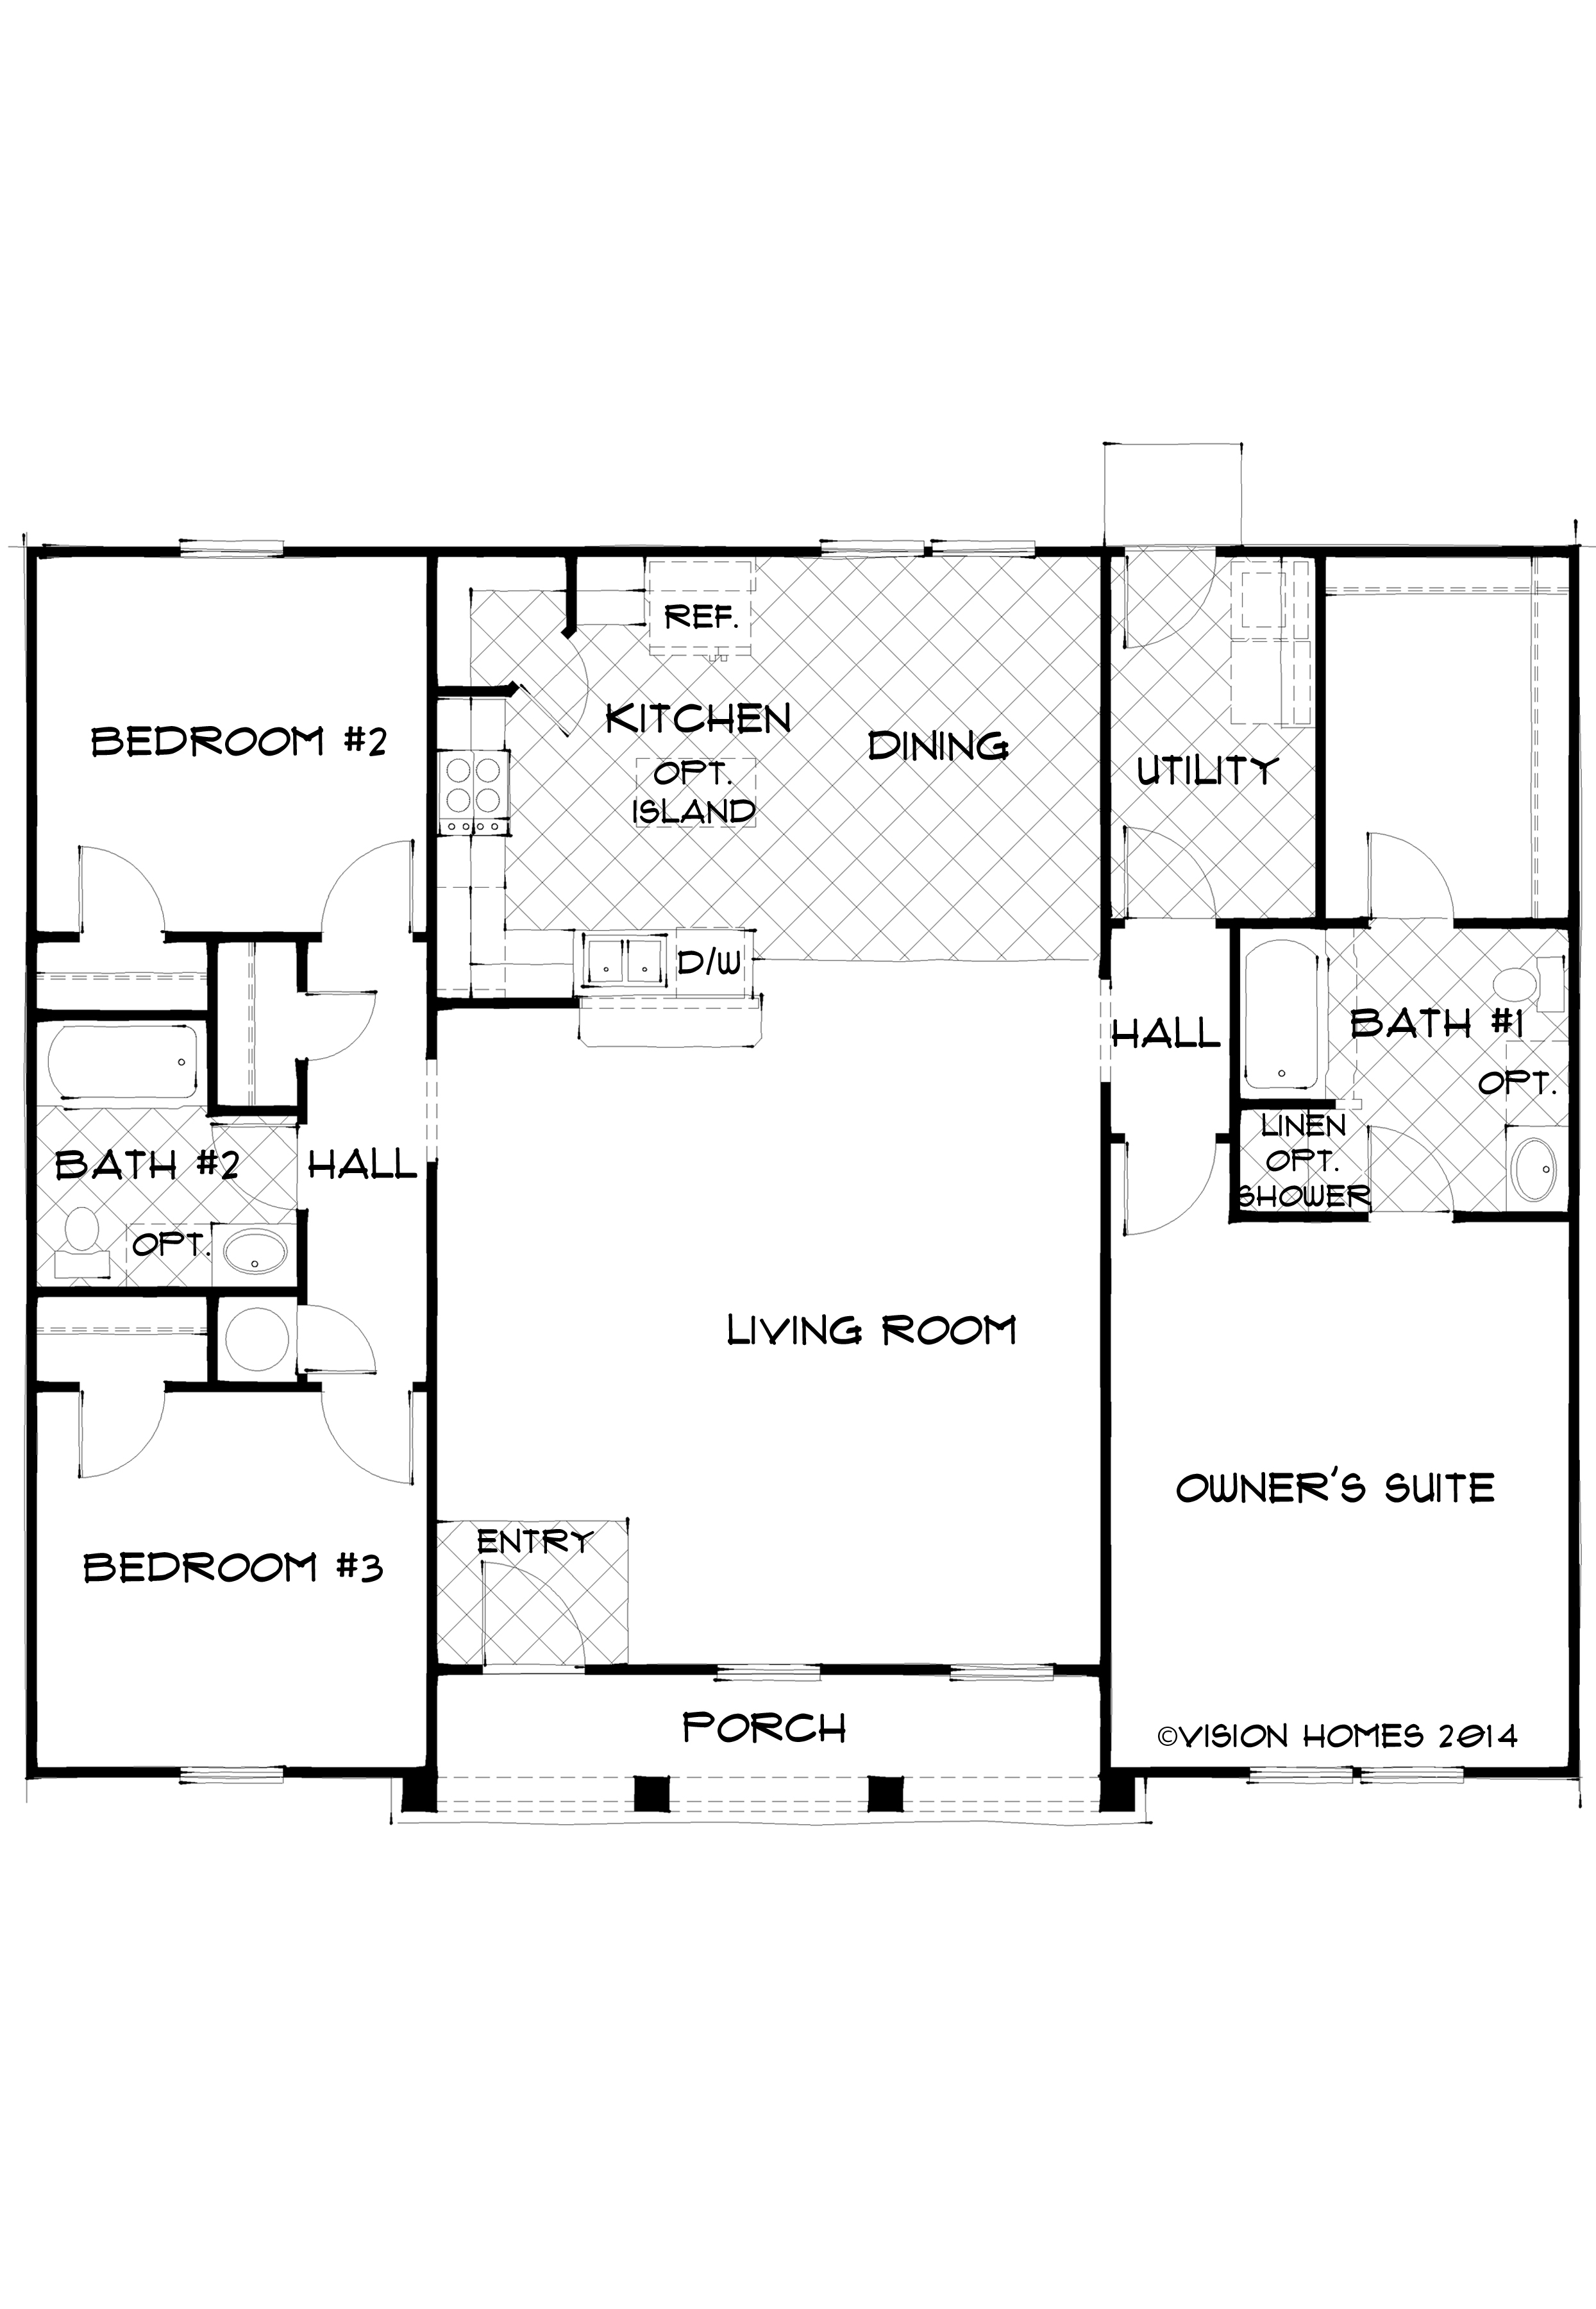 pictures vision homes view full size